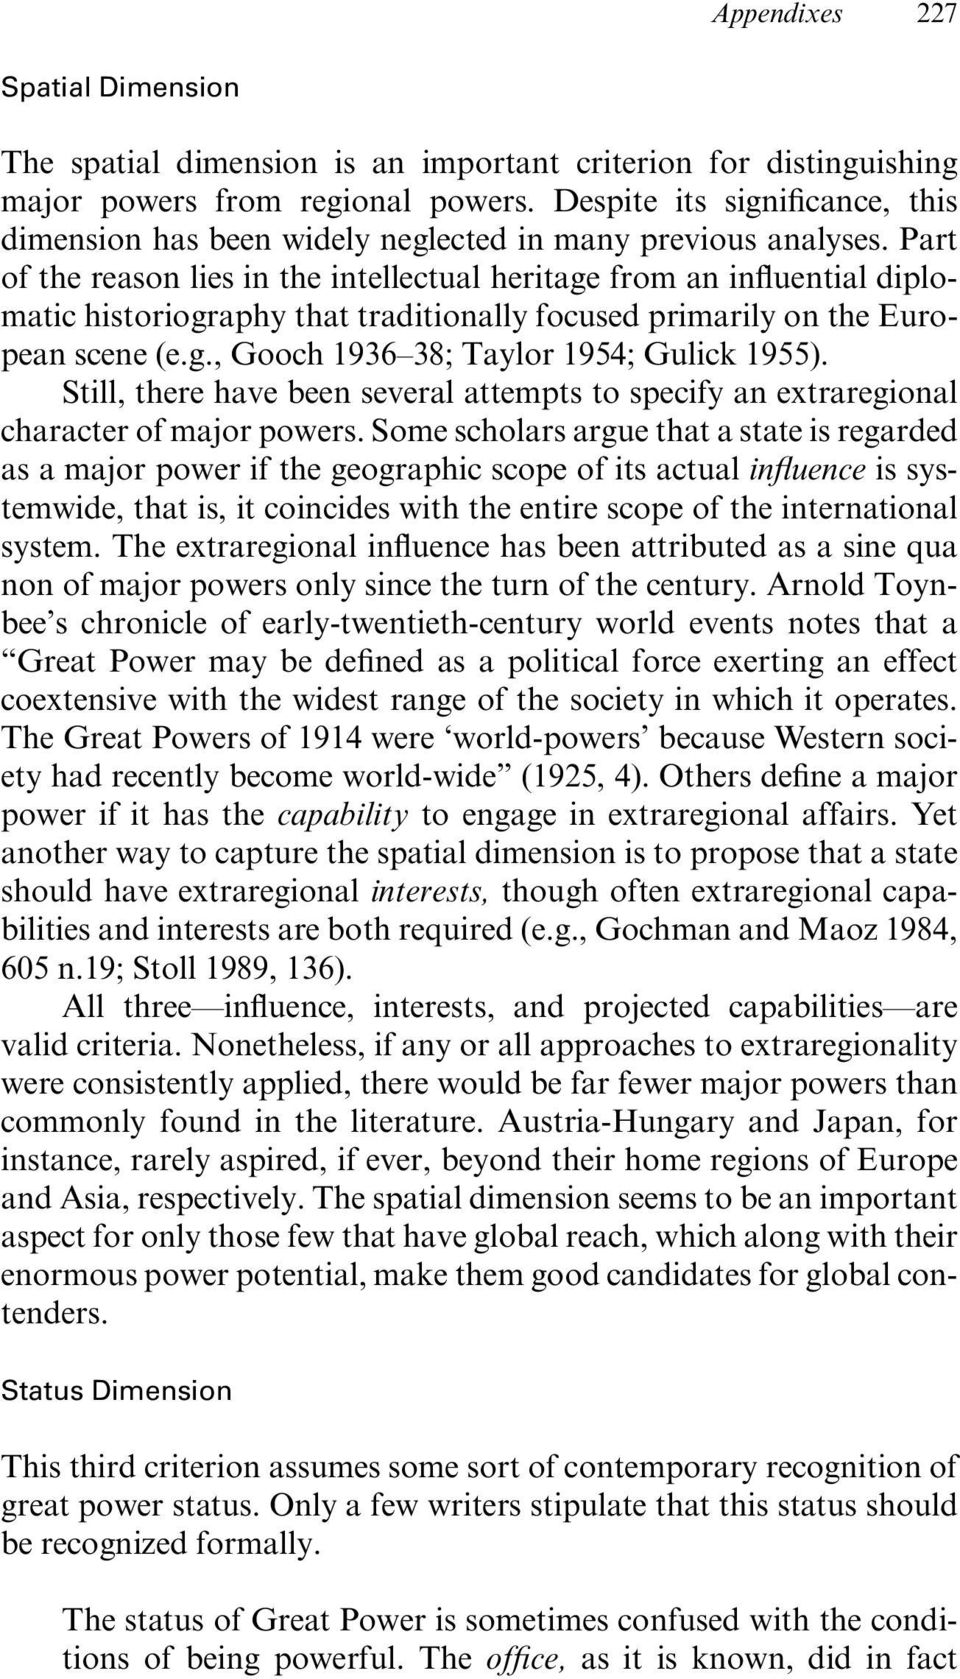 Part of the reason lies in the intellectual heritage from an in uential diplomatic historiography that traditionally focused primarily on the European scene (e.g., Gooch 1936 38; Taylor 1954; Gulick 1955).